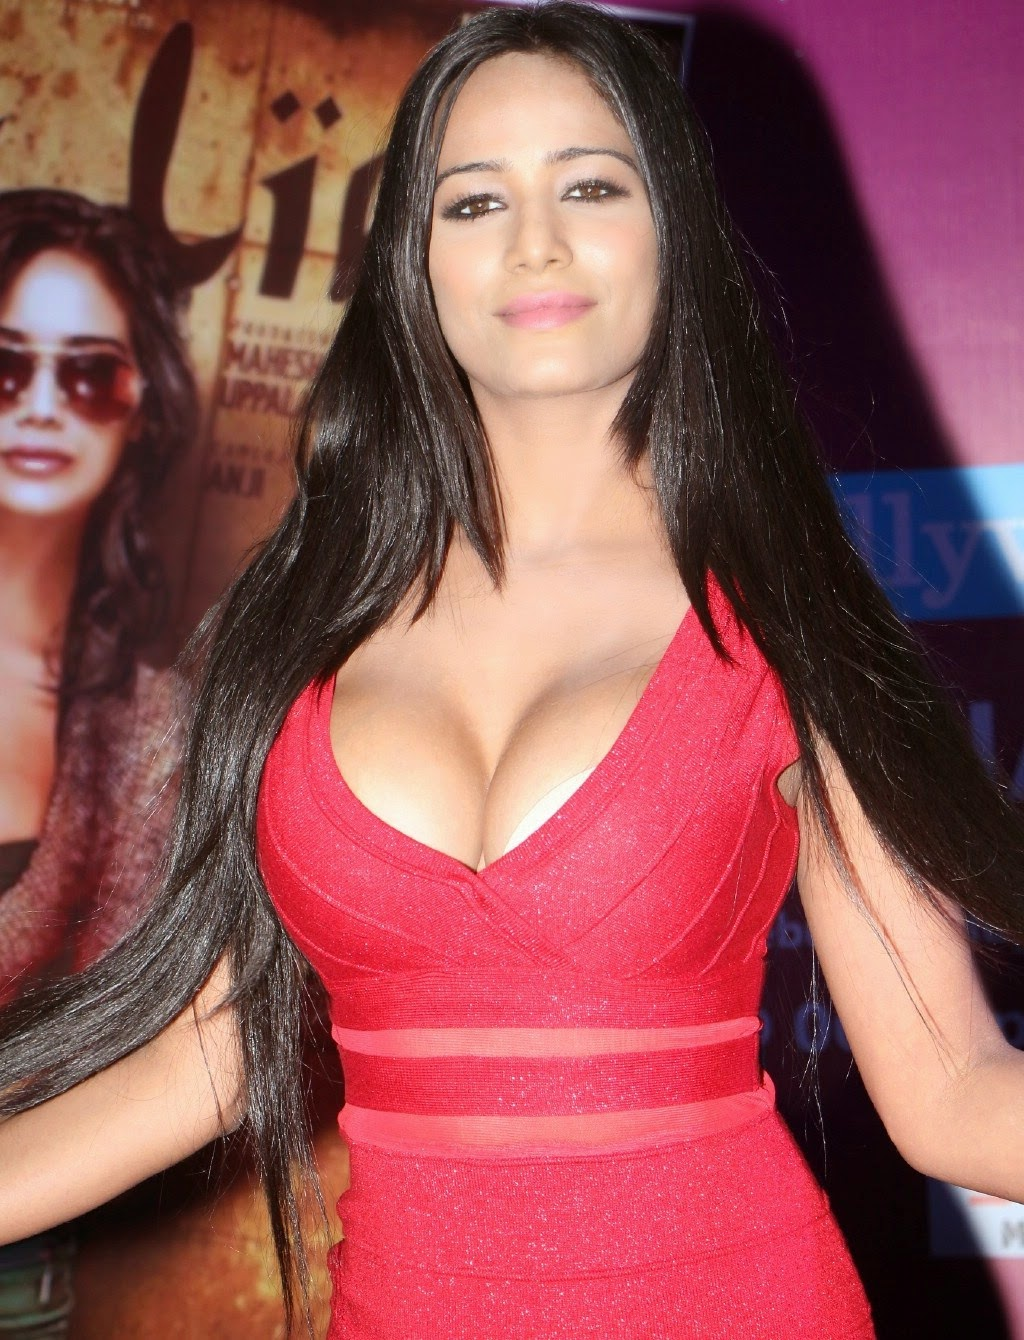 Poonam Pandey nude (48 pics), hot Feet, Instagram, see through 2020